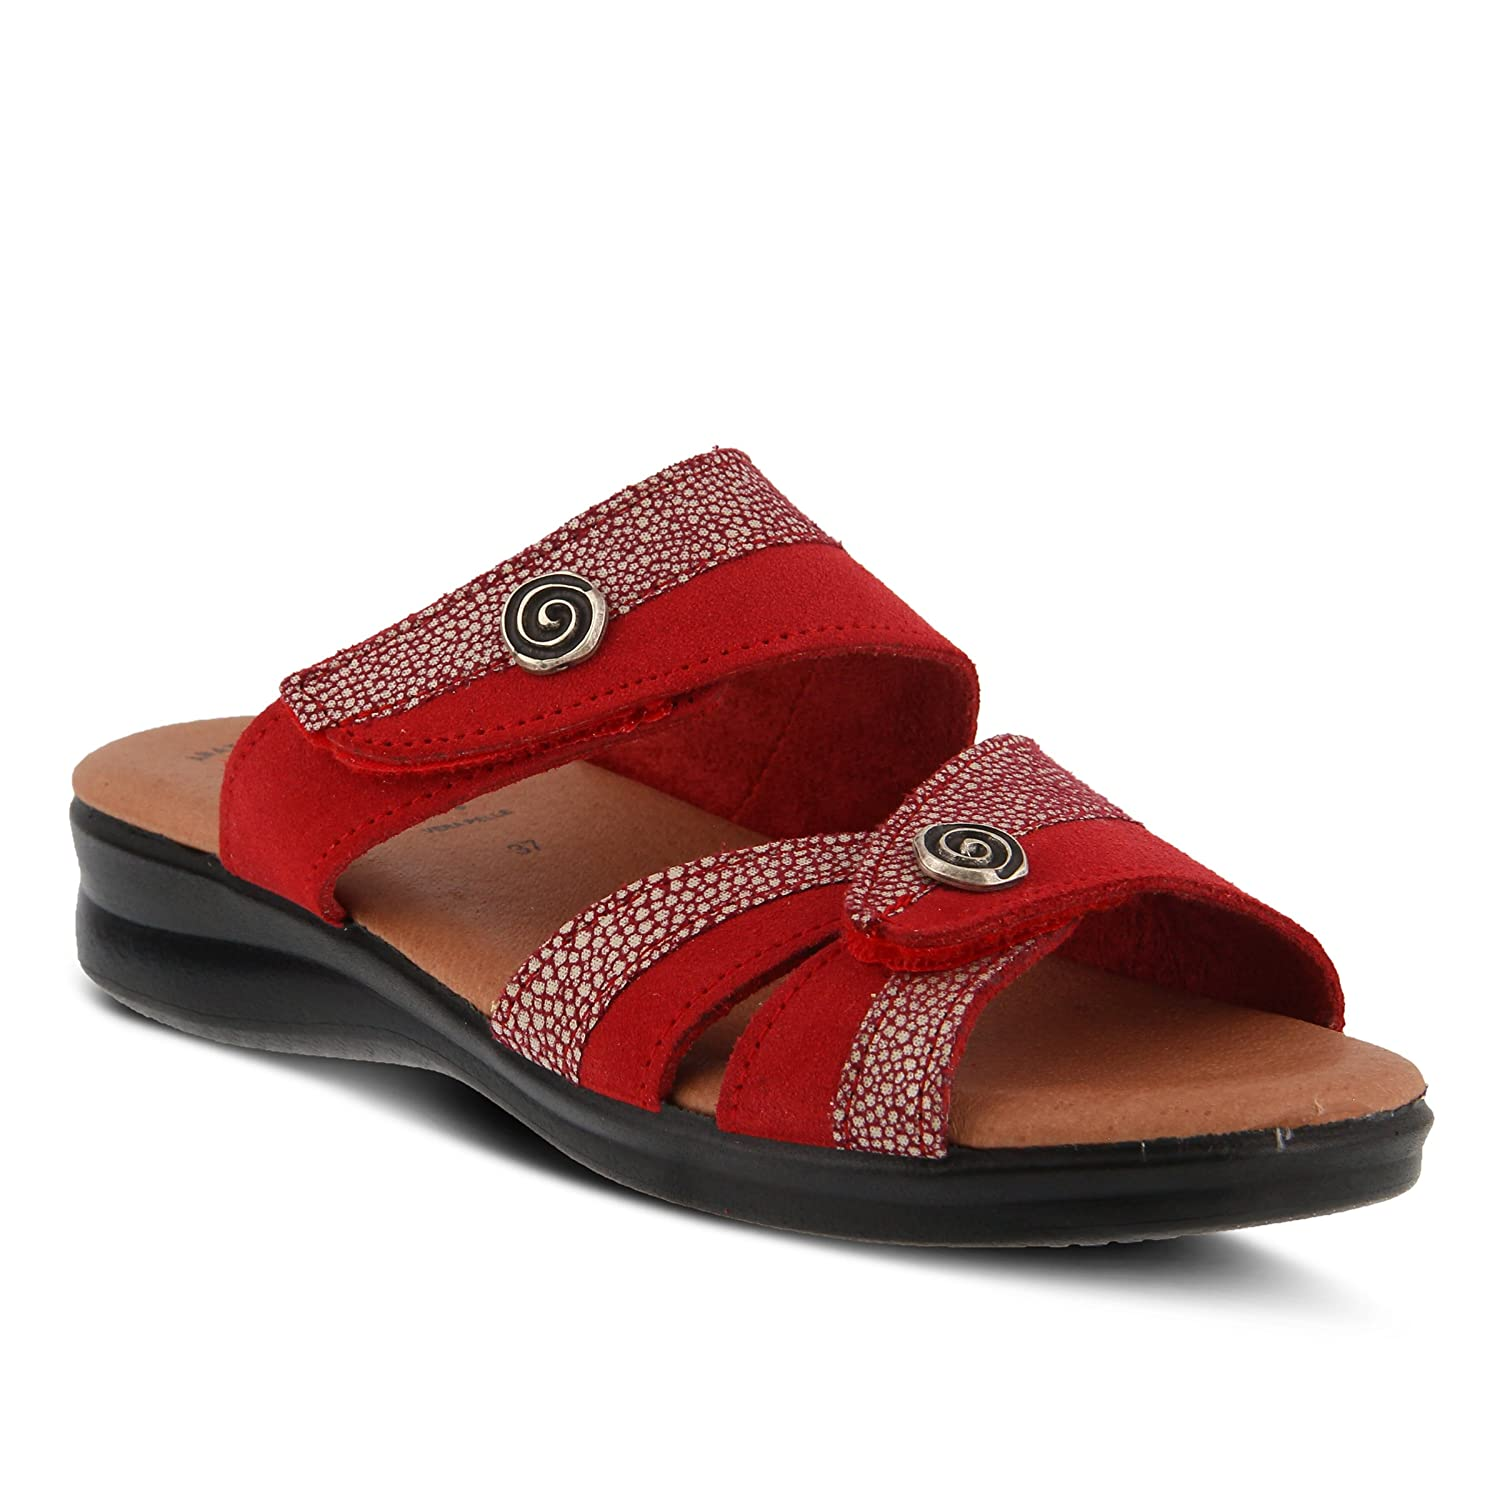 Flexus by Spring Step Women's Quasida Slide Sandal B079C49YY5 37 M EU (US 6.5-7 US)|Red/Multi